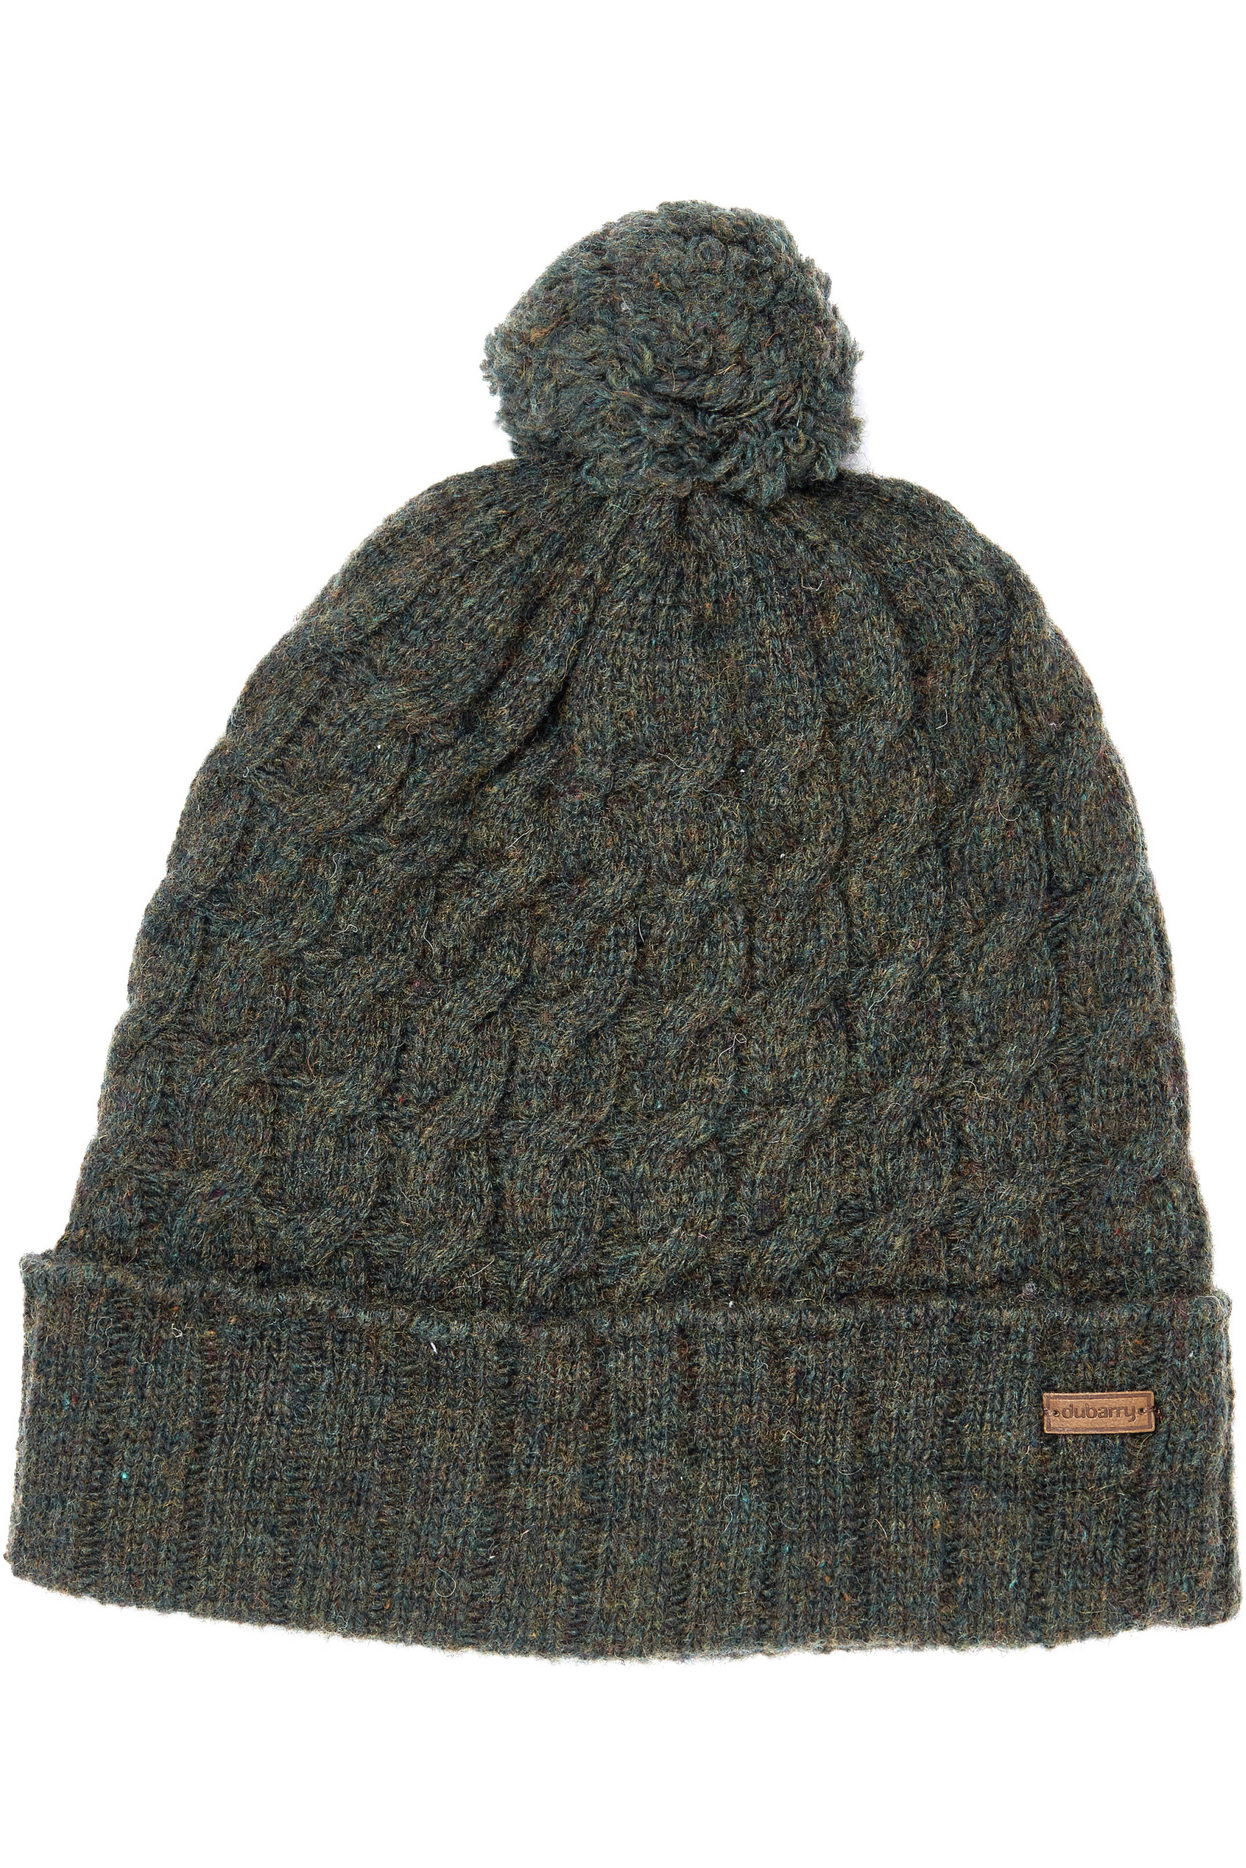 c7966248195 Dubarry Athboy Knited Bobble Hat Olive ...